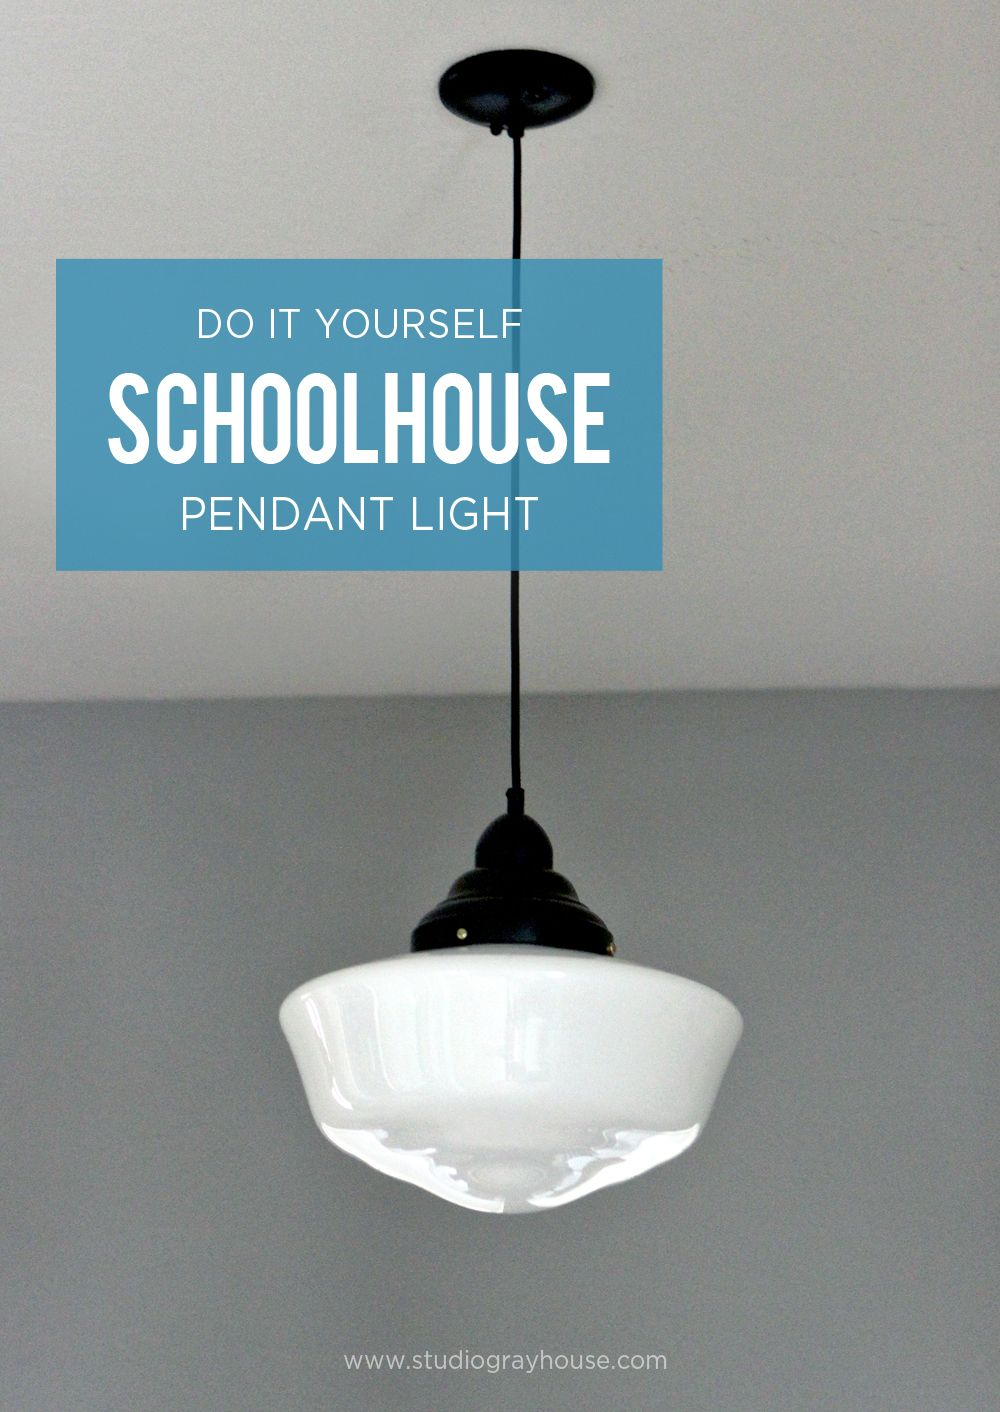 Schoolhouse Pendant Light Solution Pinterest Pendant Lighting - Affordable pendant lighting